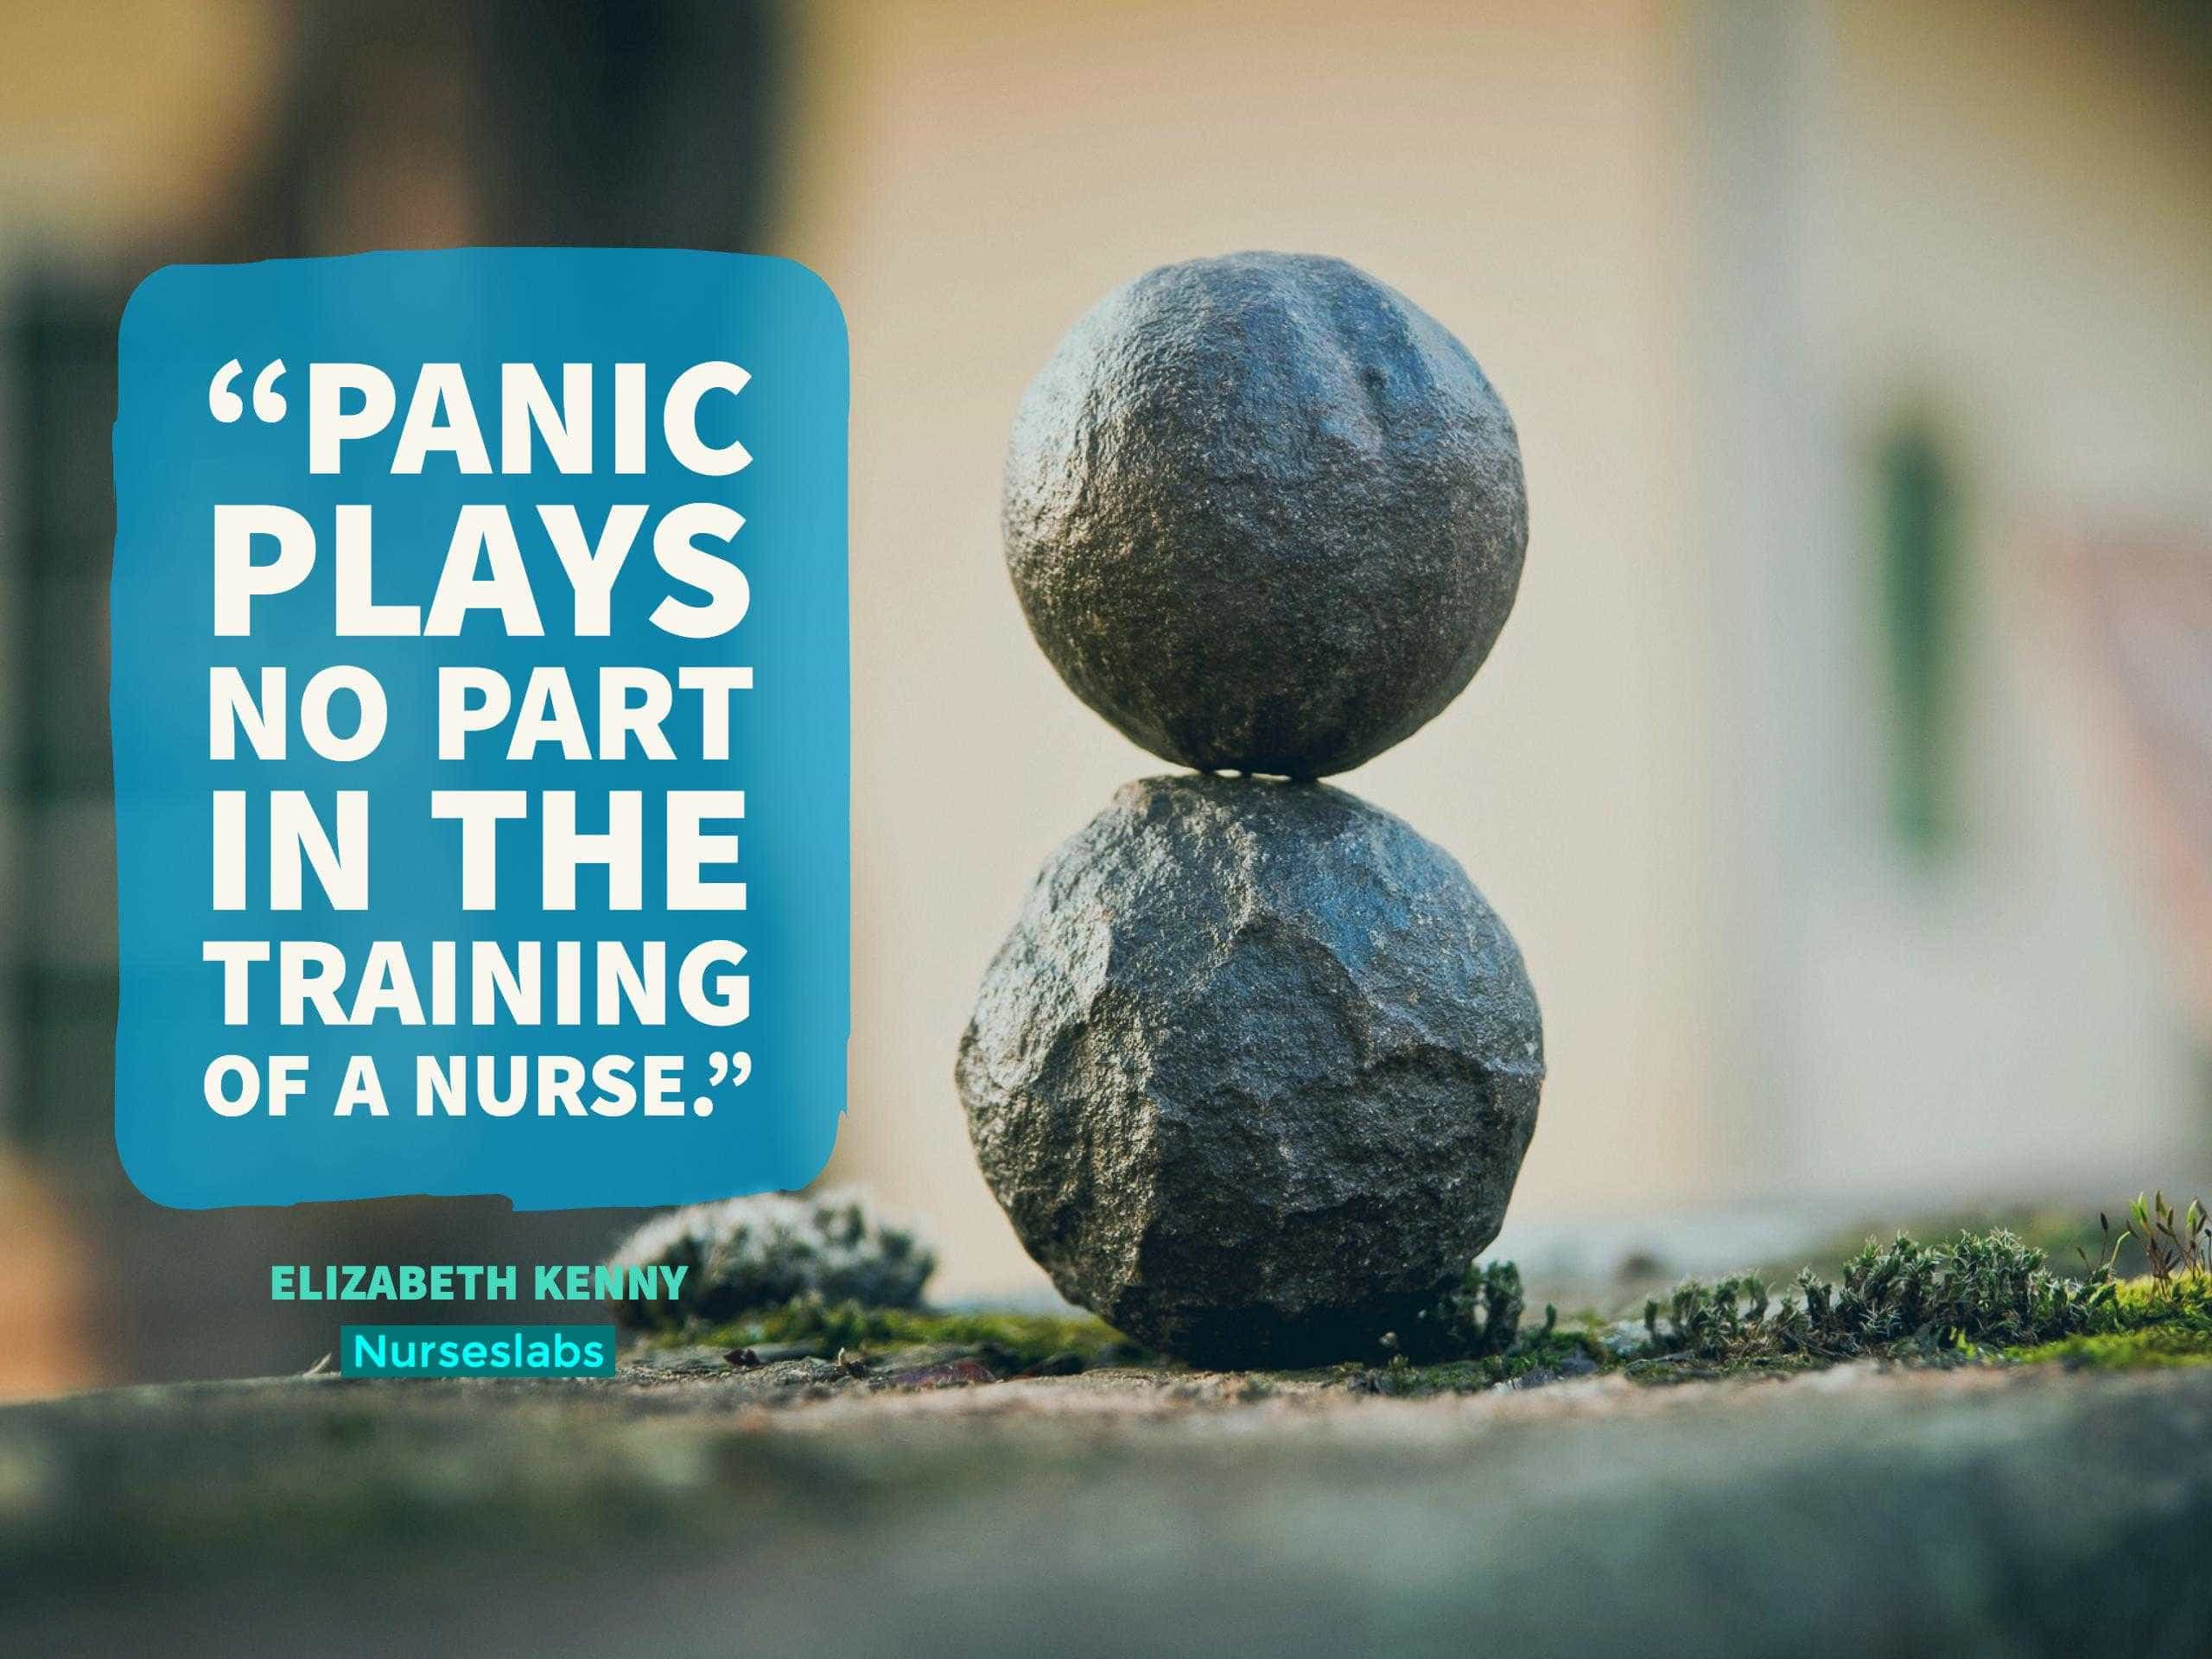 """Panic plays no part in the training of a nurse."" – Elizabeth Kenny"